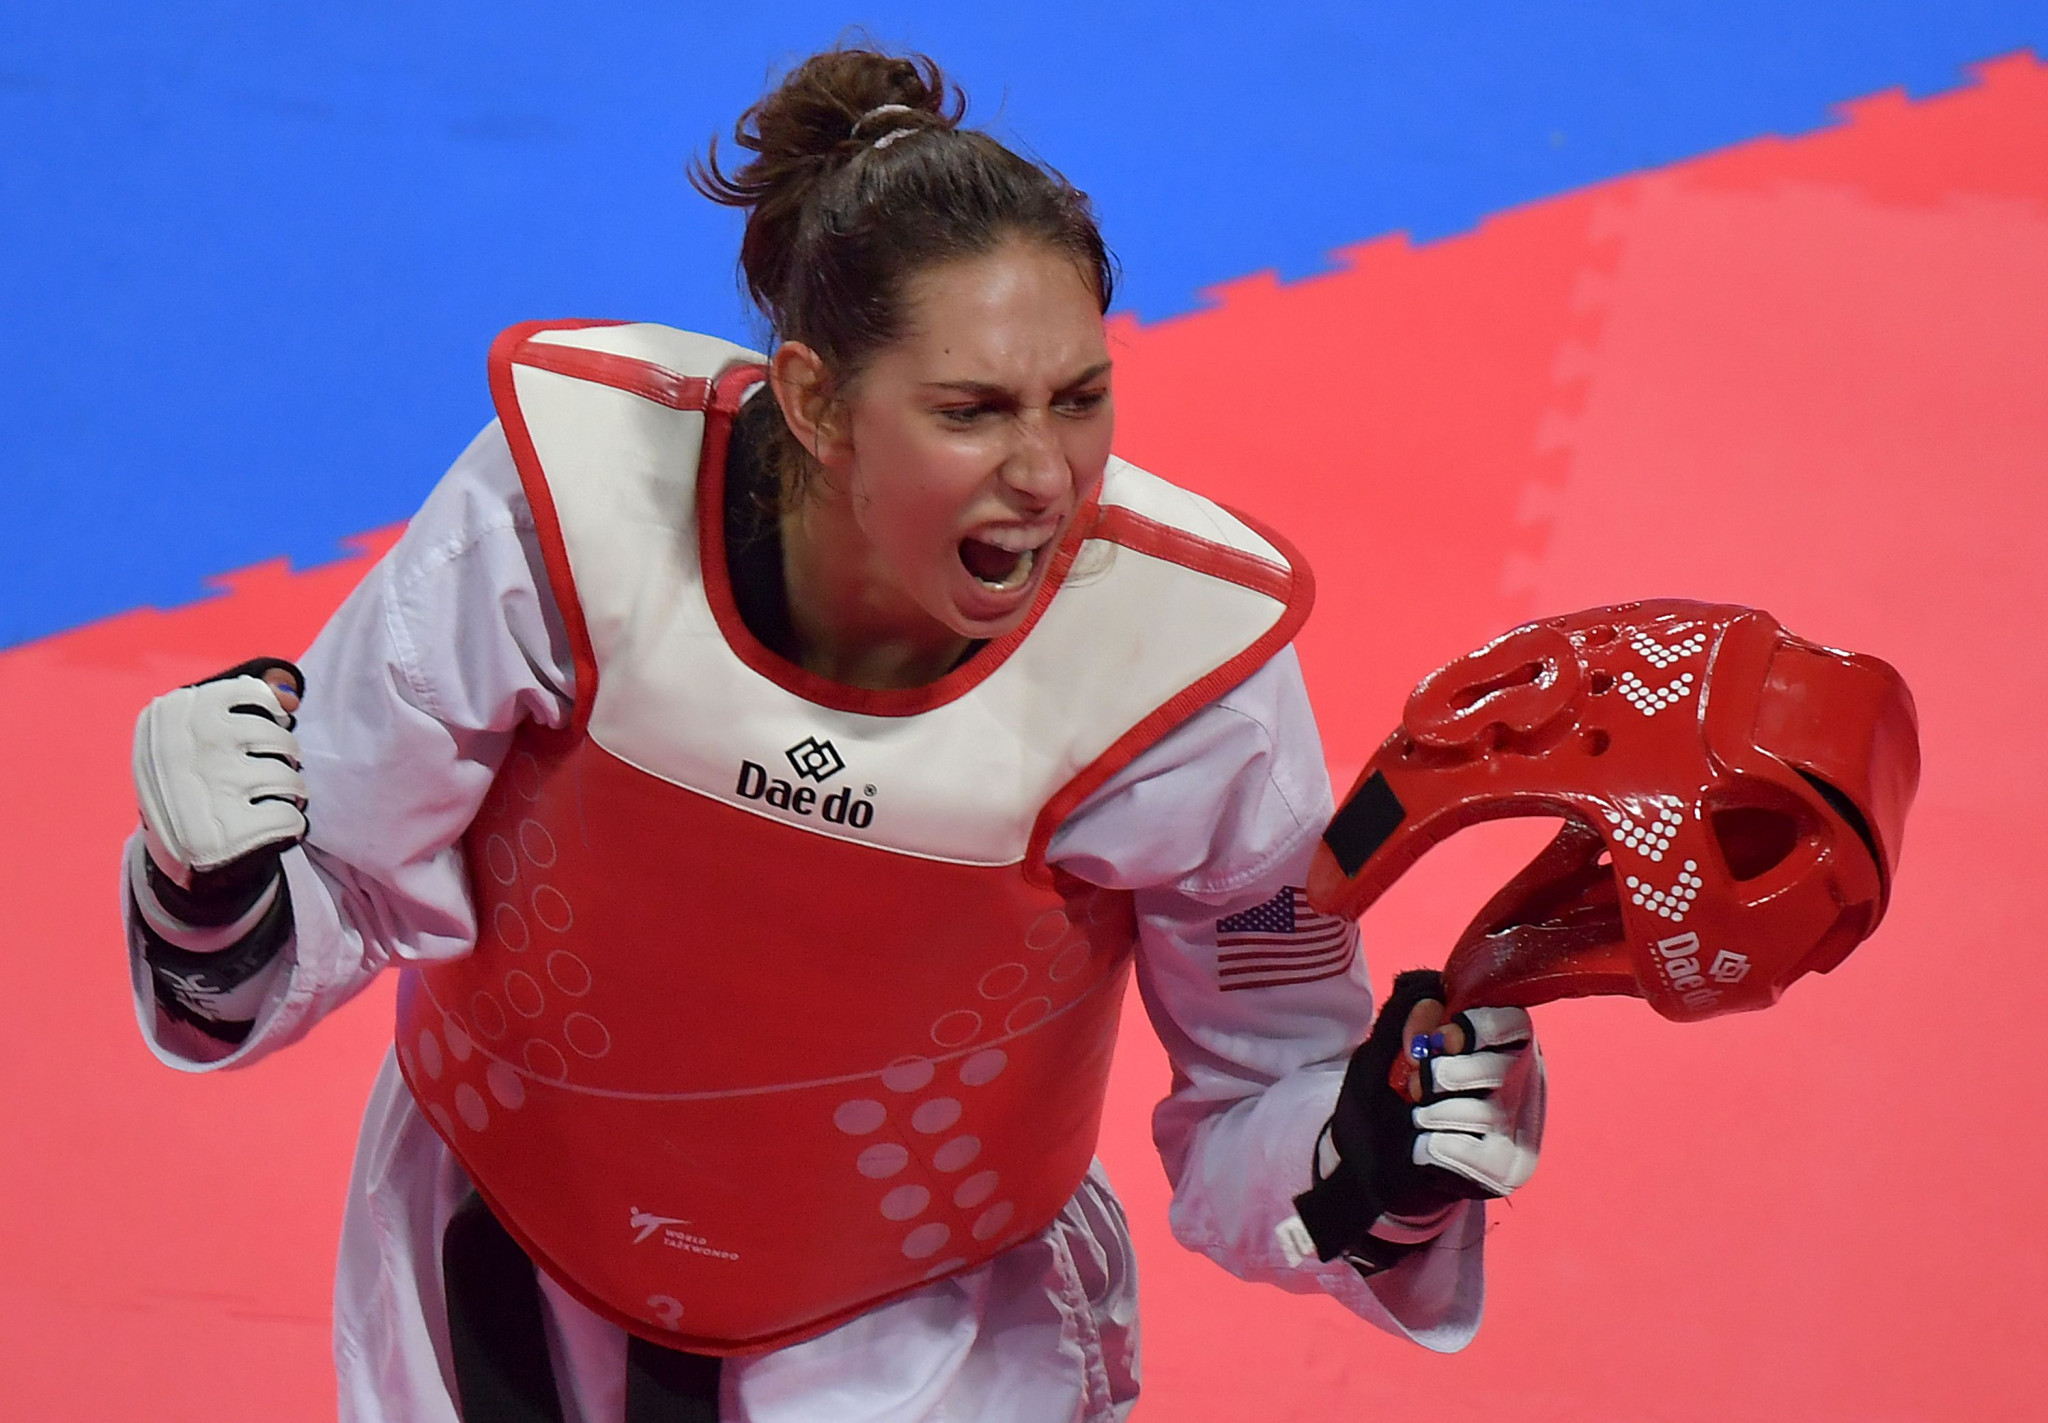 Pan American Games champion Anastasija Zolotic has been named in the US squad ©Getty Images